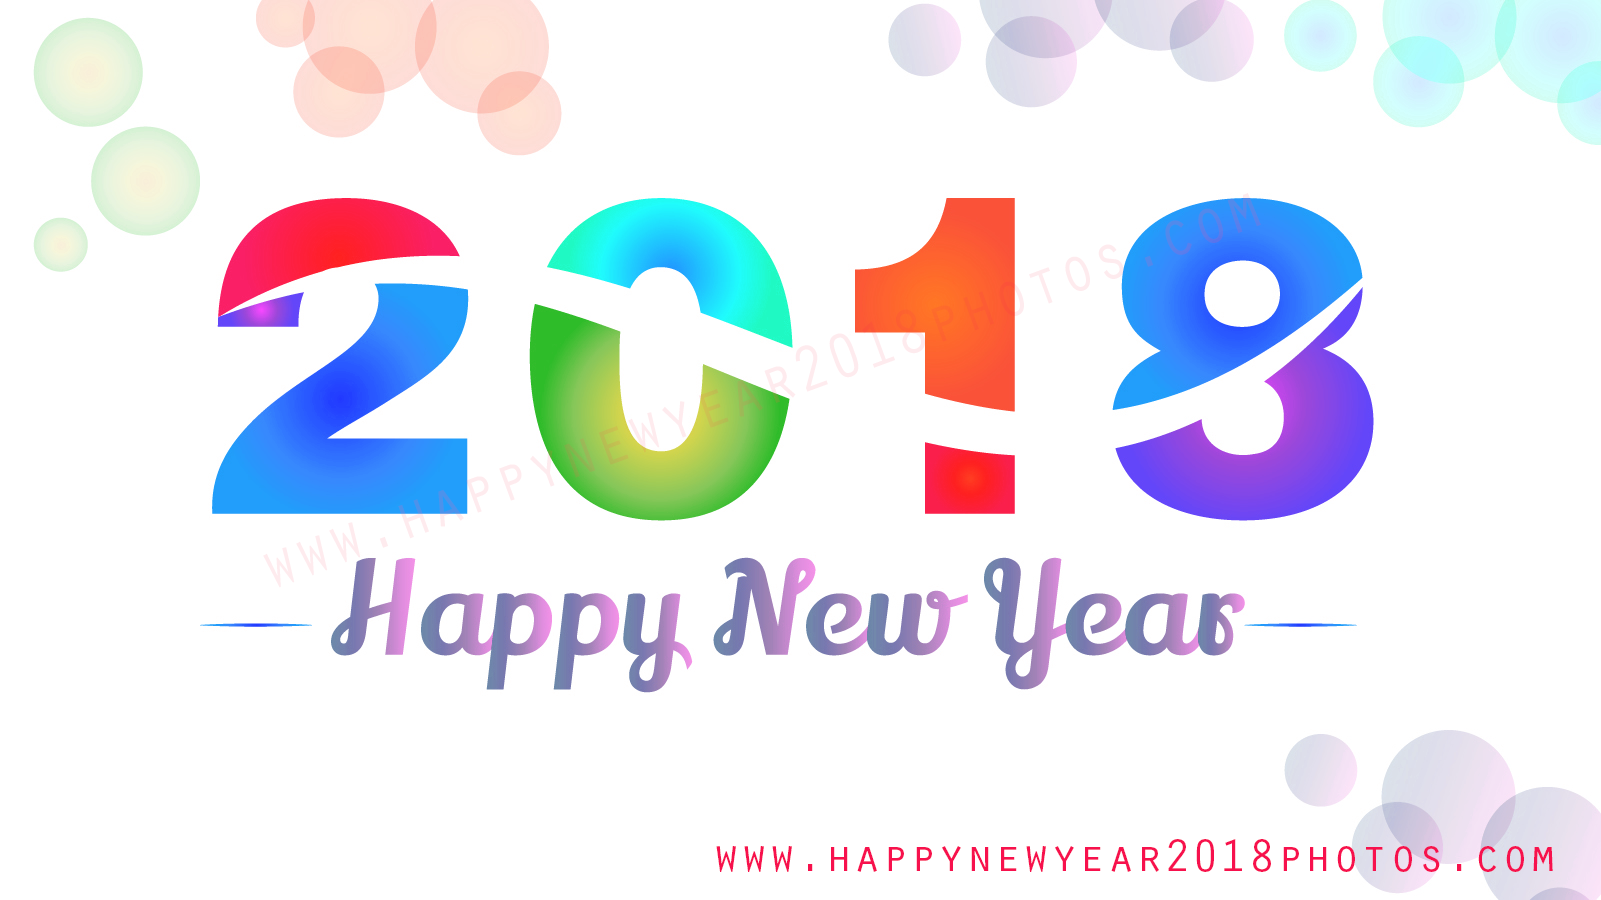 Merry Christmas Wishes And Motivational Happy New Year Quotes 2018 - Happy New Year 2018 PNG